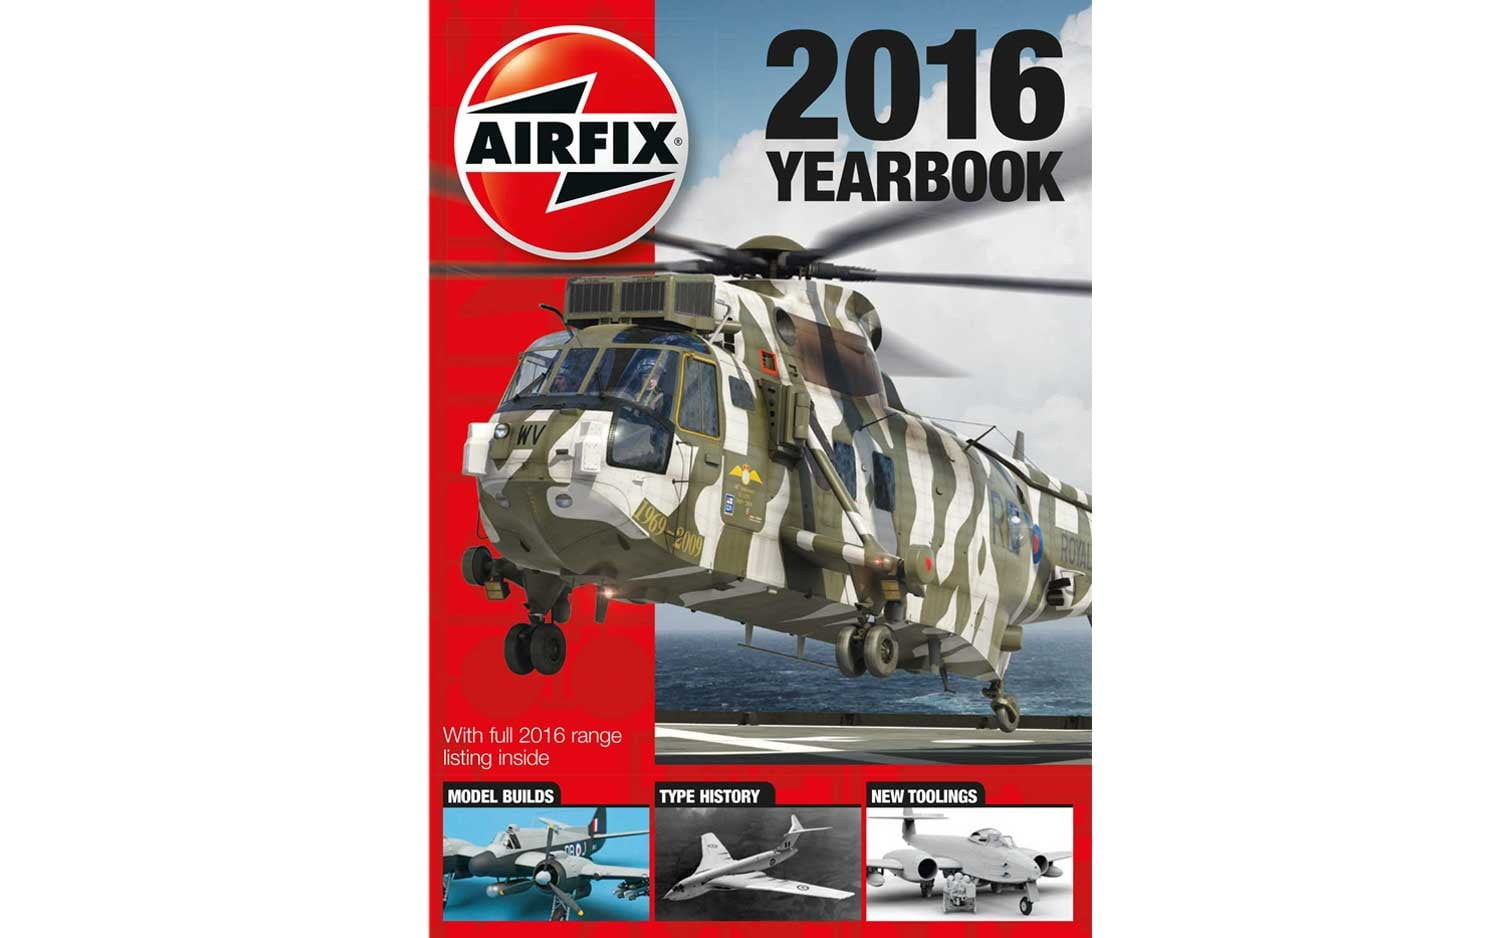 airfix 2016 yearbook catalogue. Black Bedroom Furniture Sets. Home Design Ideas